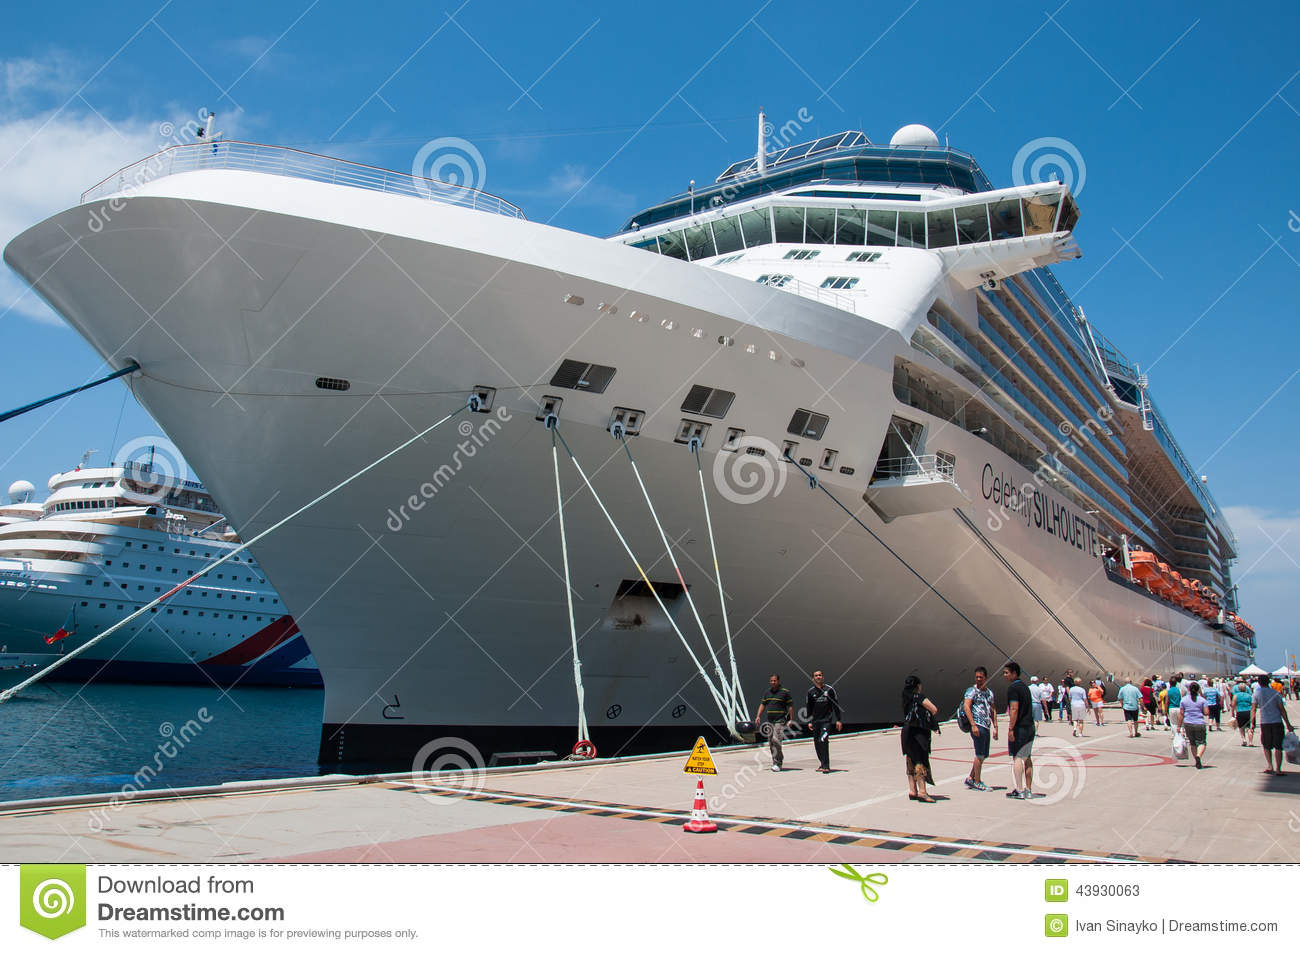 changing business management styles celebrity cruise lines Royal caribbean cruises is a us-based cruise line operator owning and operating five cruises lines: royal caribbean international, celebrity cruises, pullmantur cruises, azamara club cruises and.